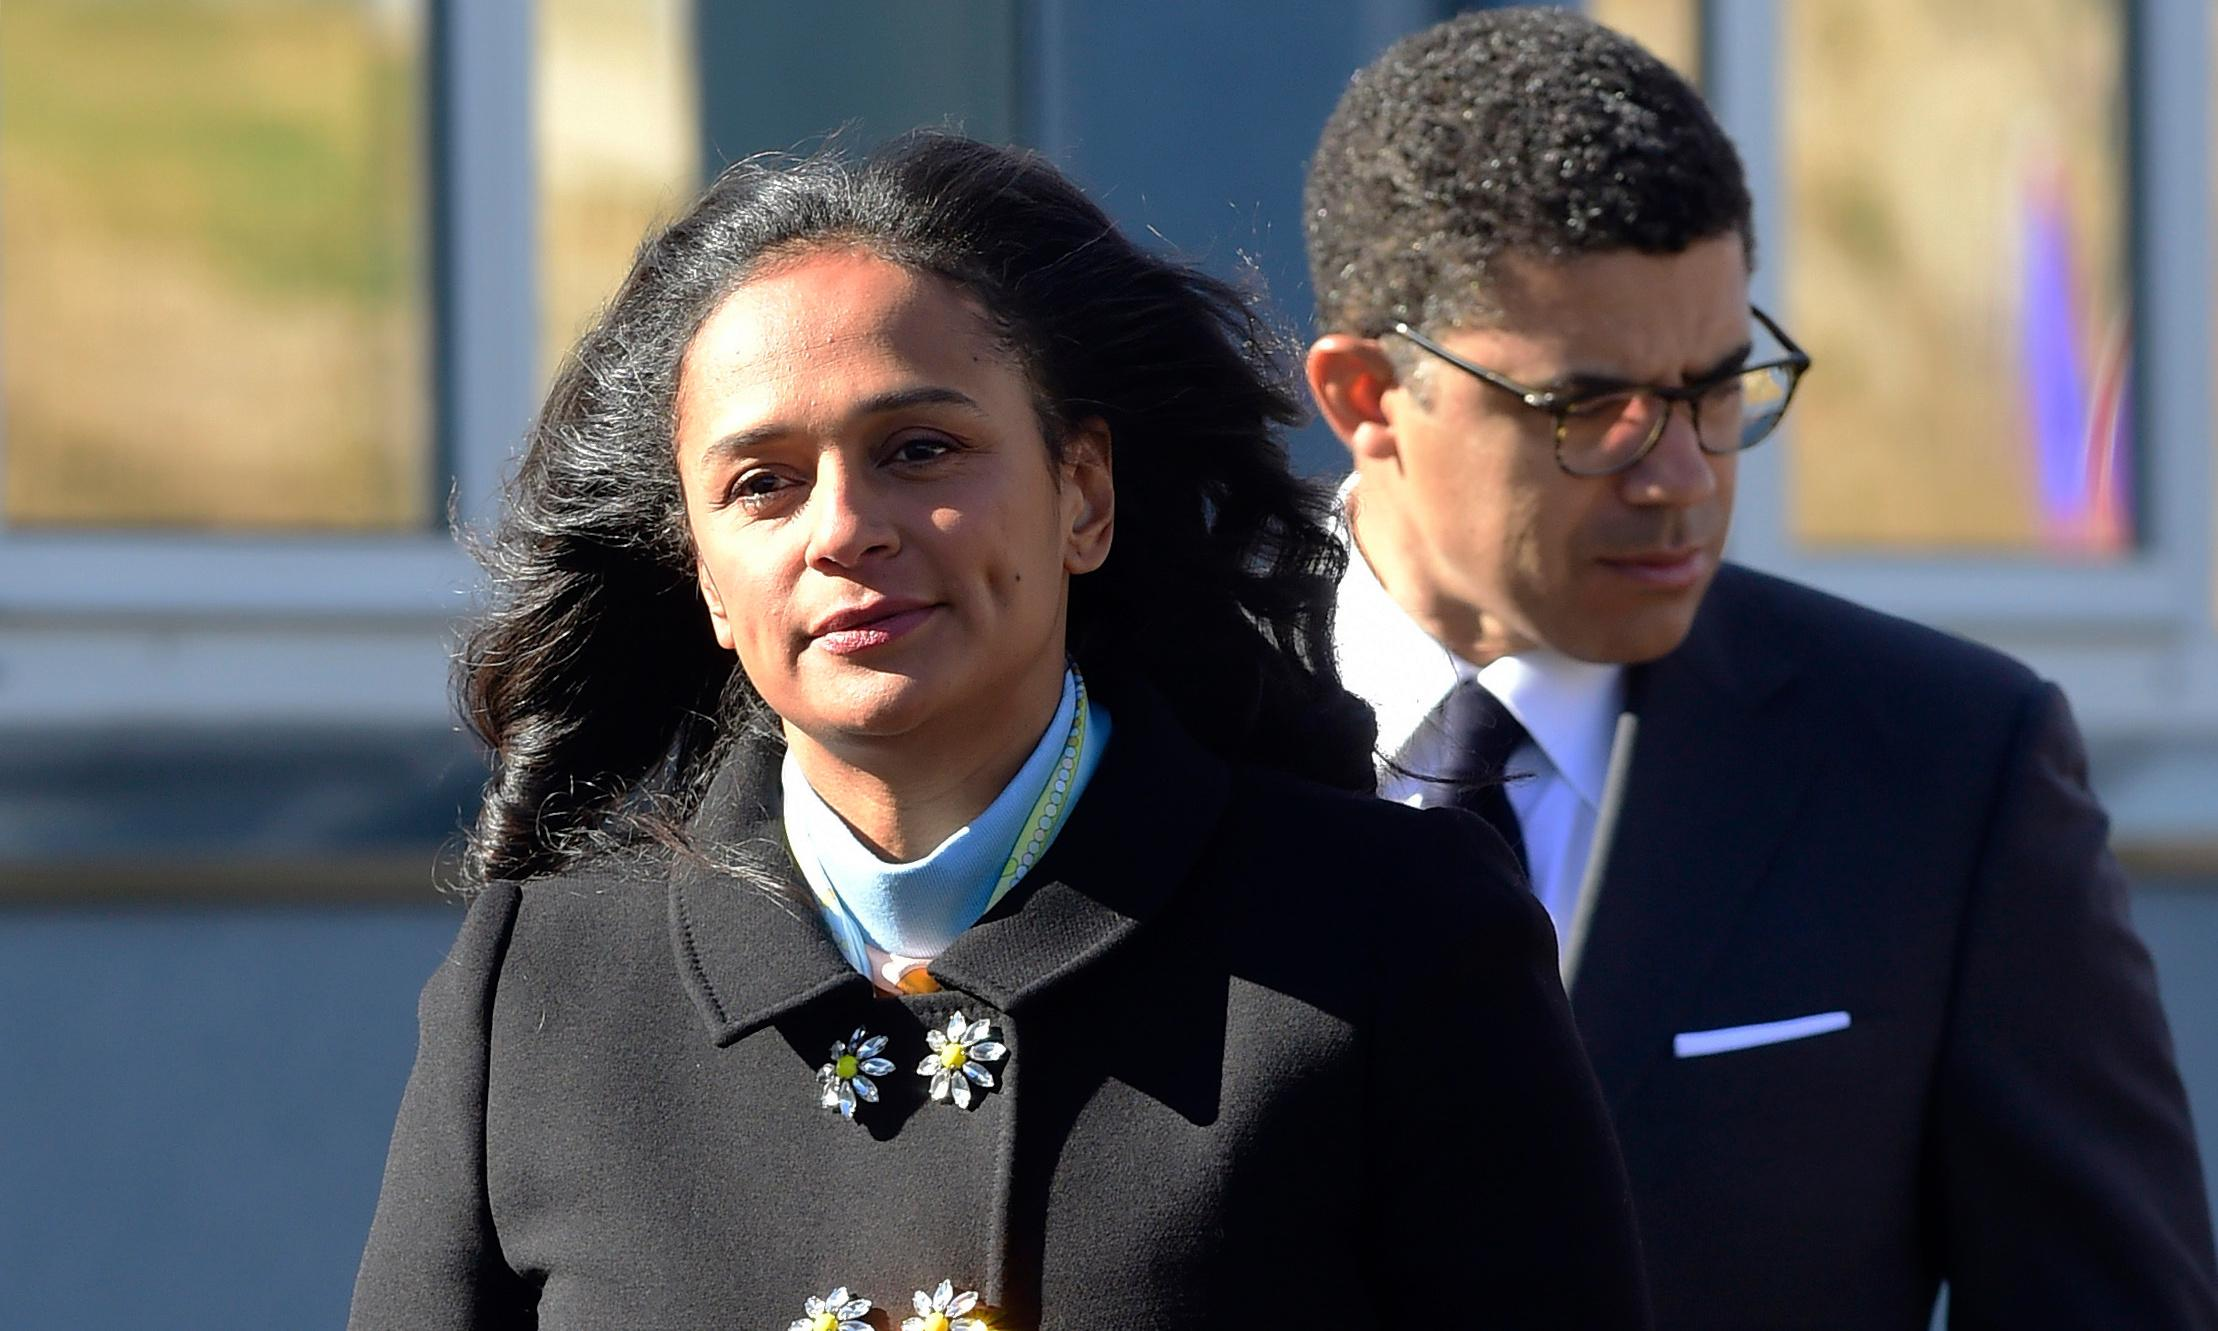 With Isabel Dos Santos, we Angolans developed Stockholm syndrome